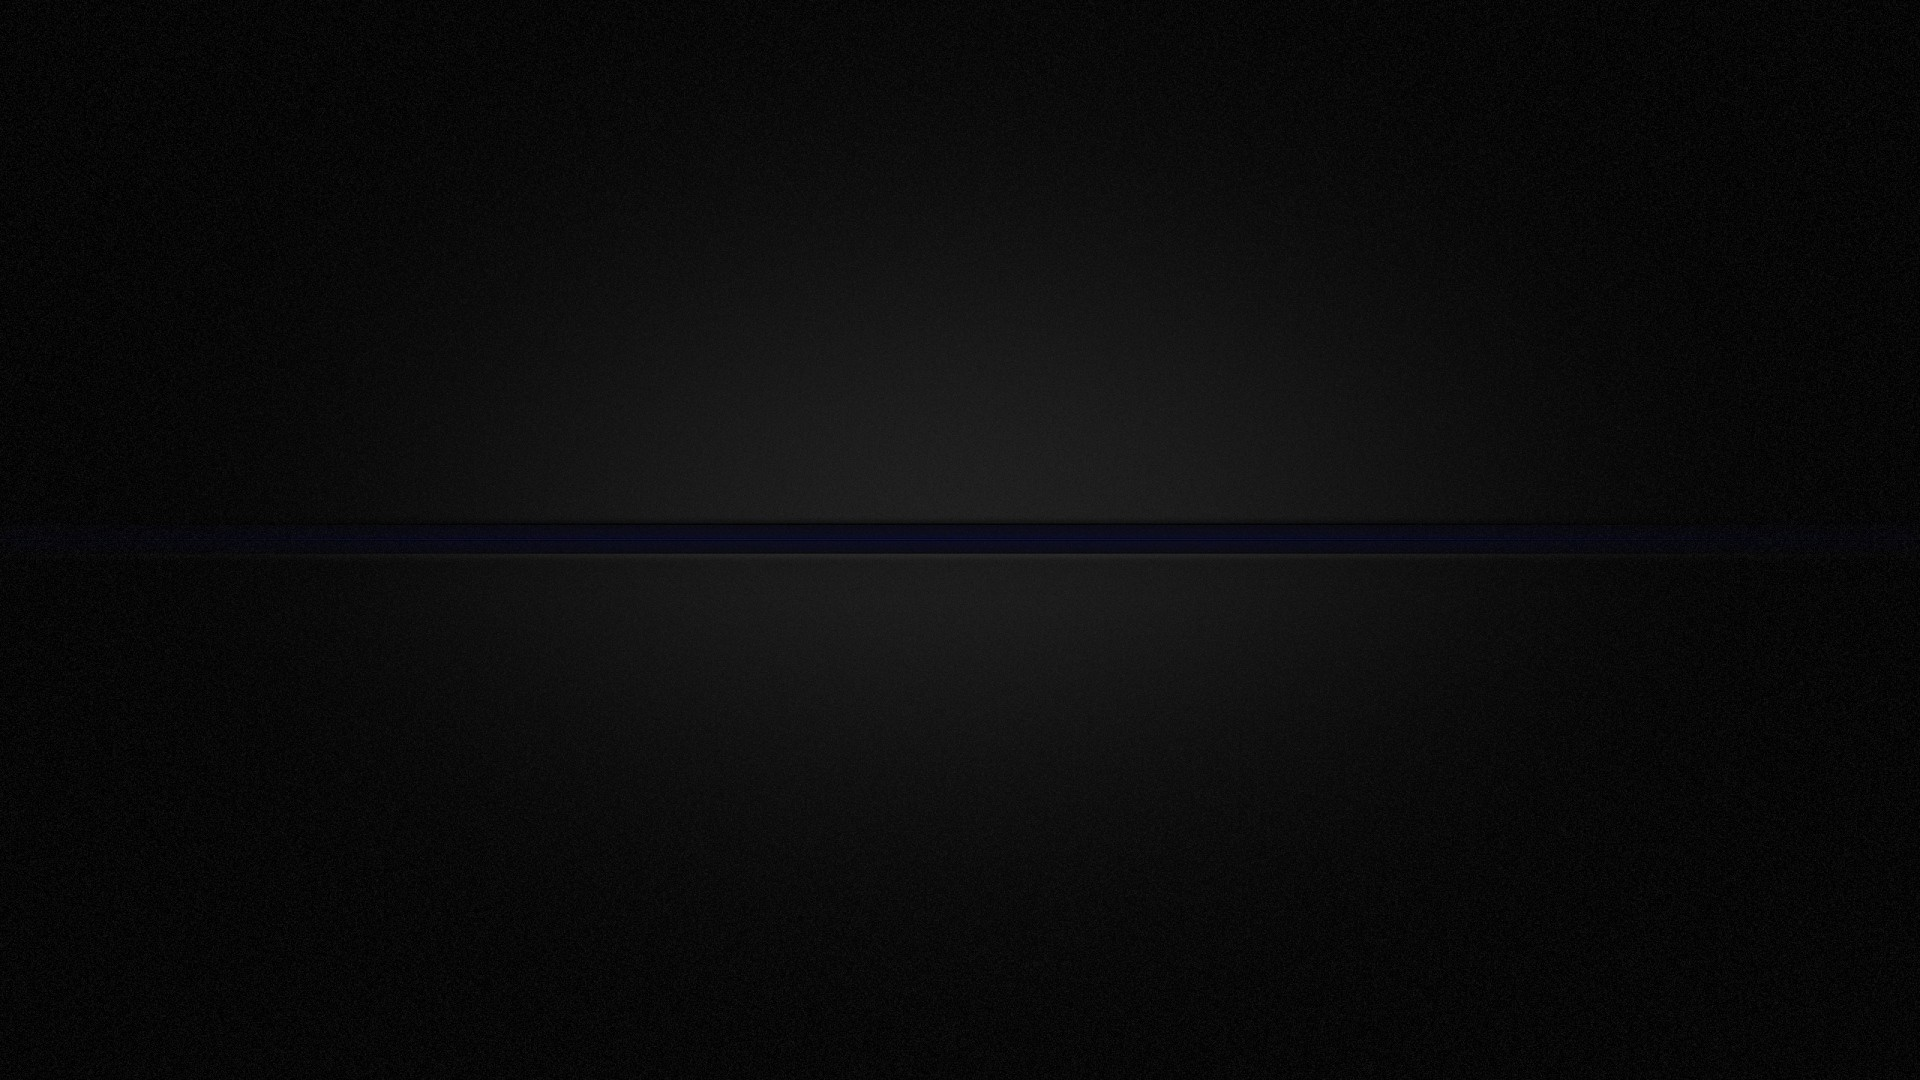 1920x1080 - Minimalist Wallpaper 1920x1080 63